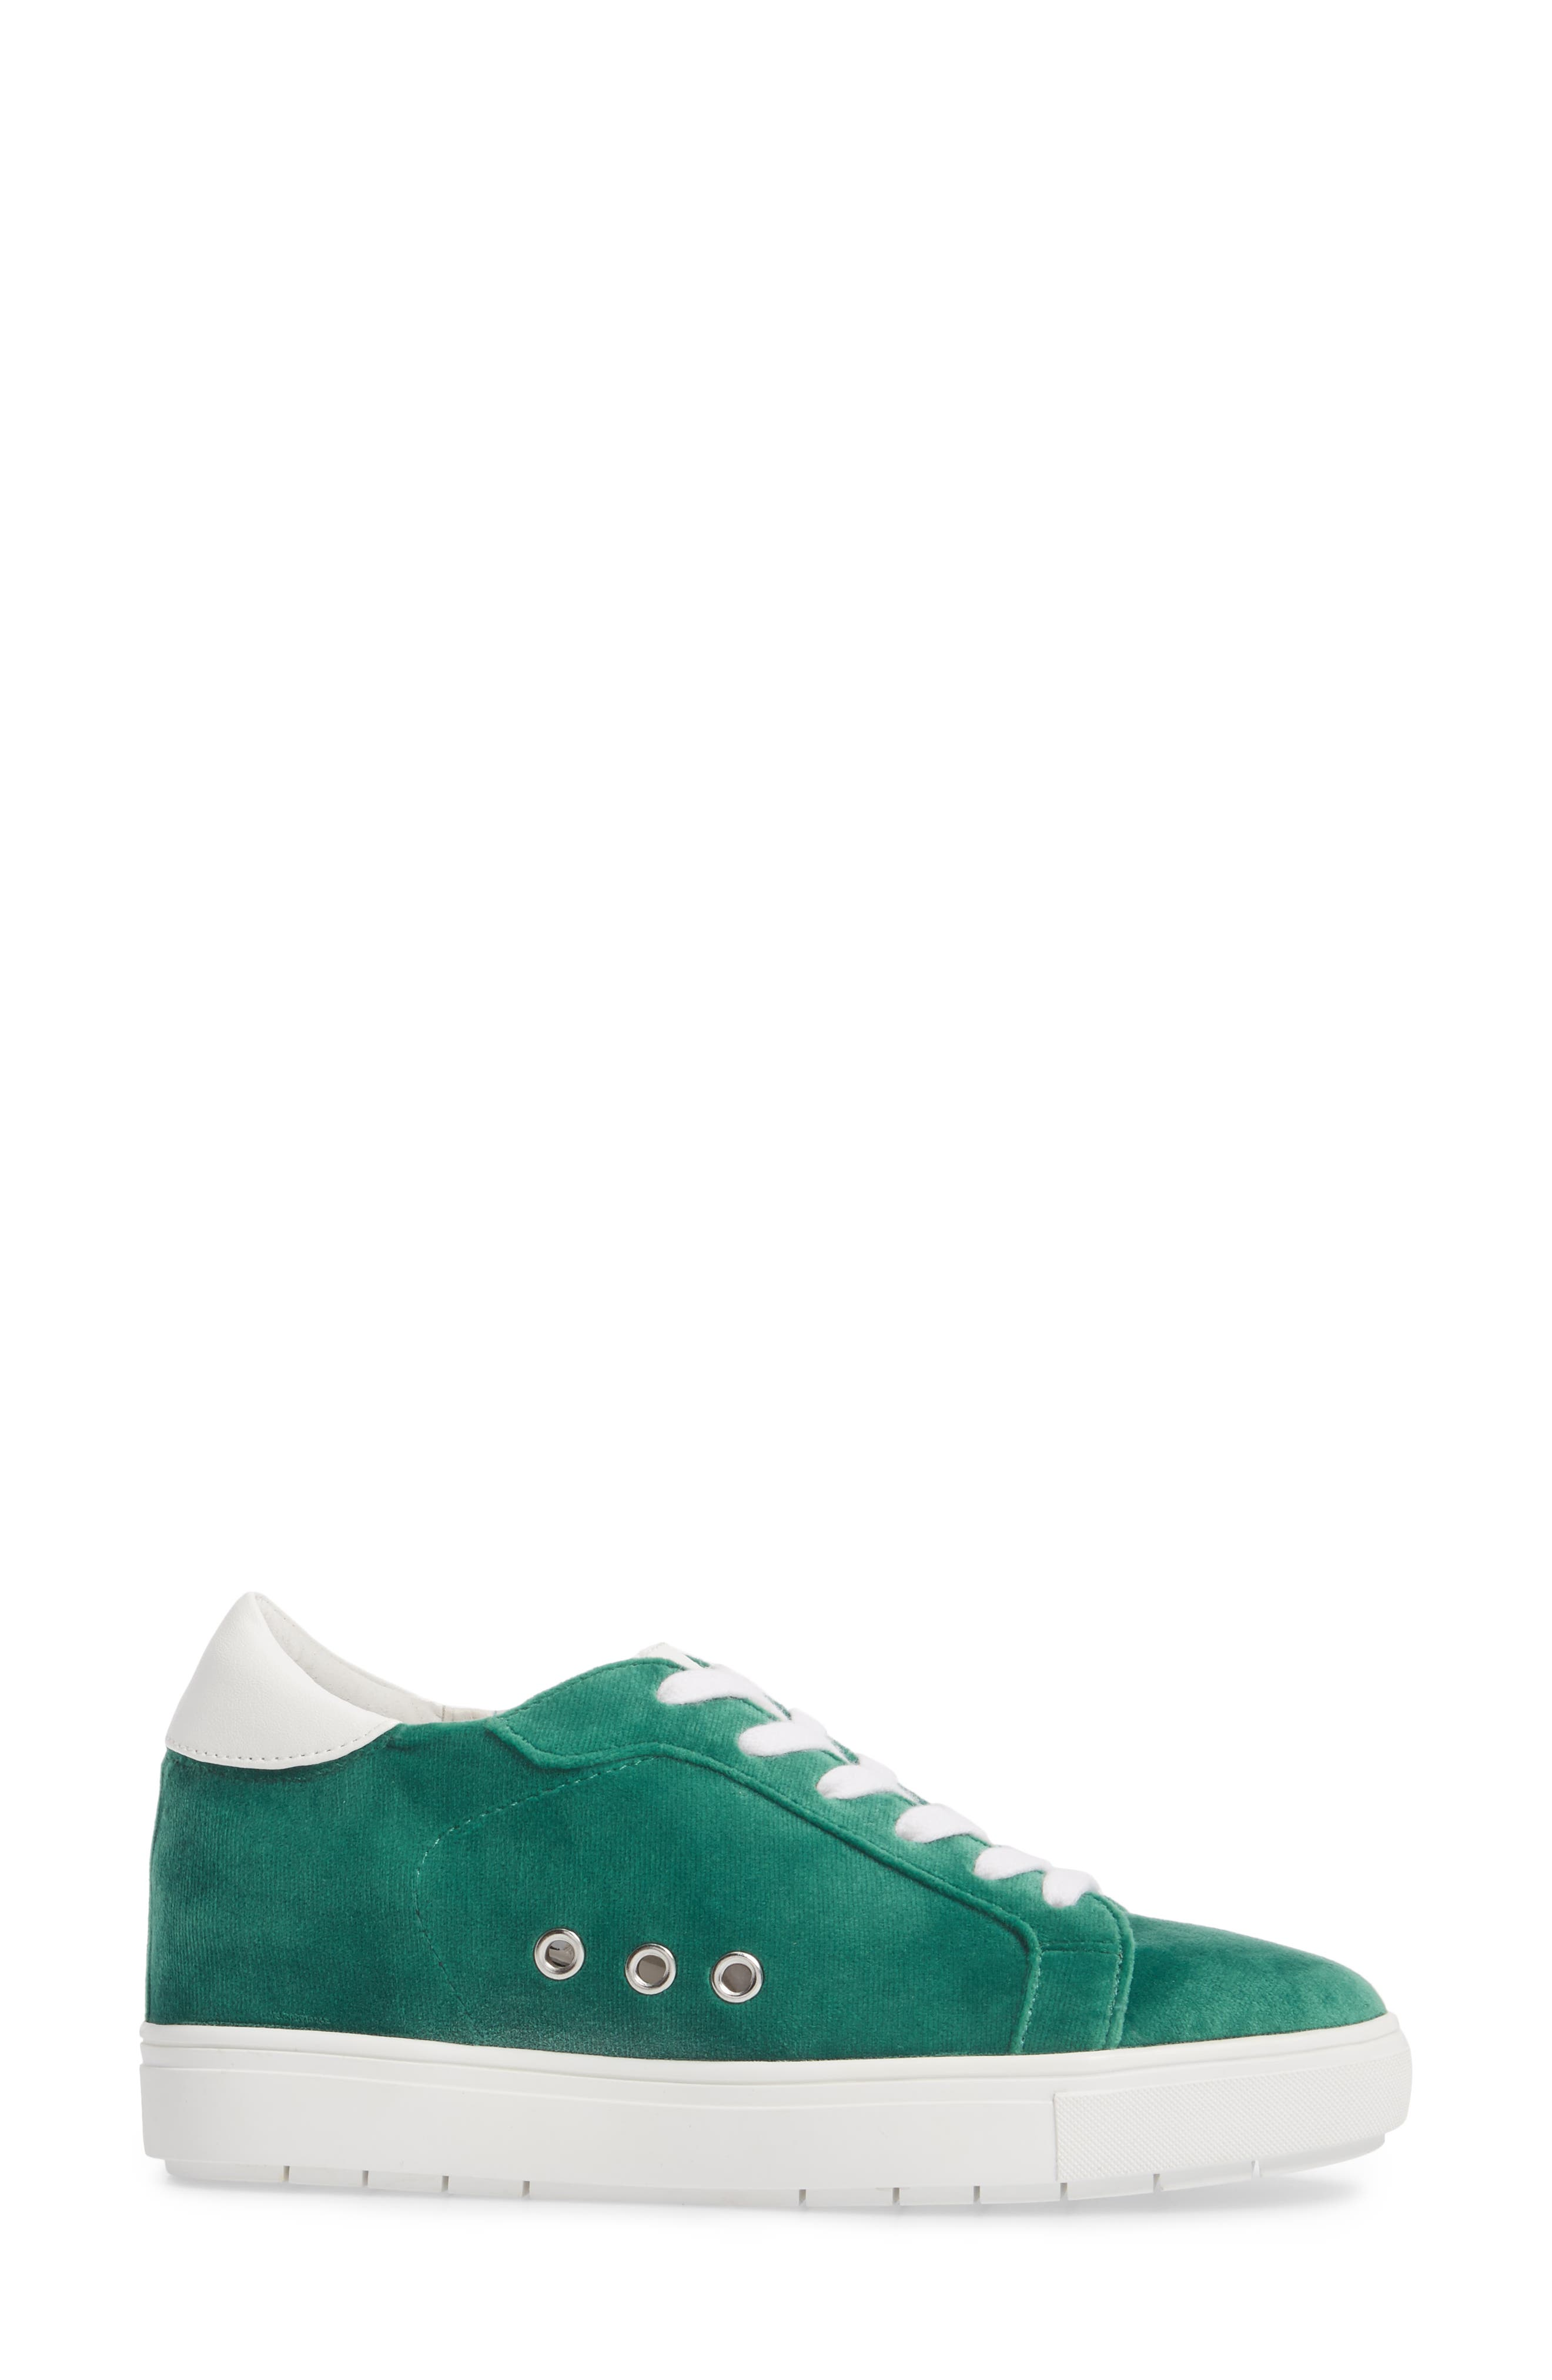 Steal Concealed Wedge Sneaker,                             Alternate thumbnail 10, color,